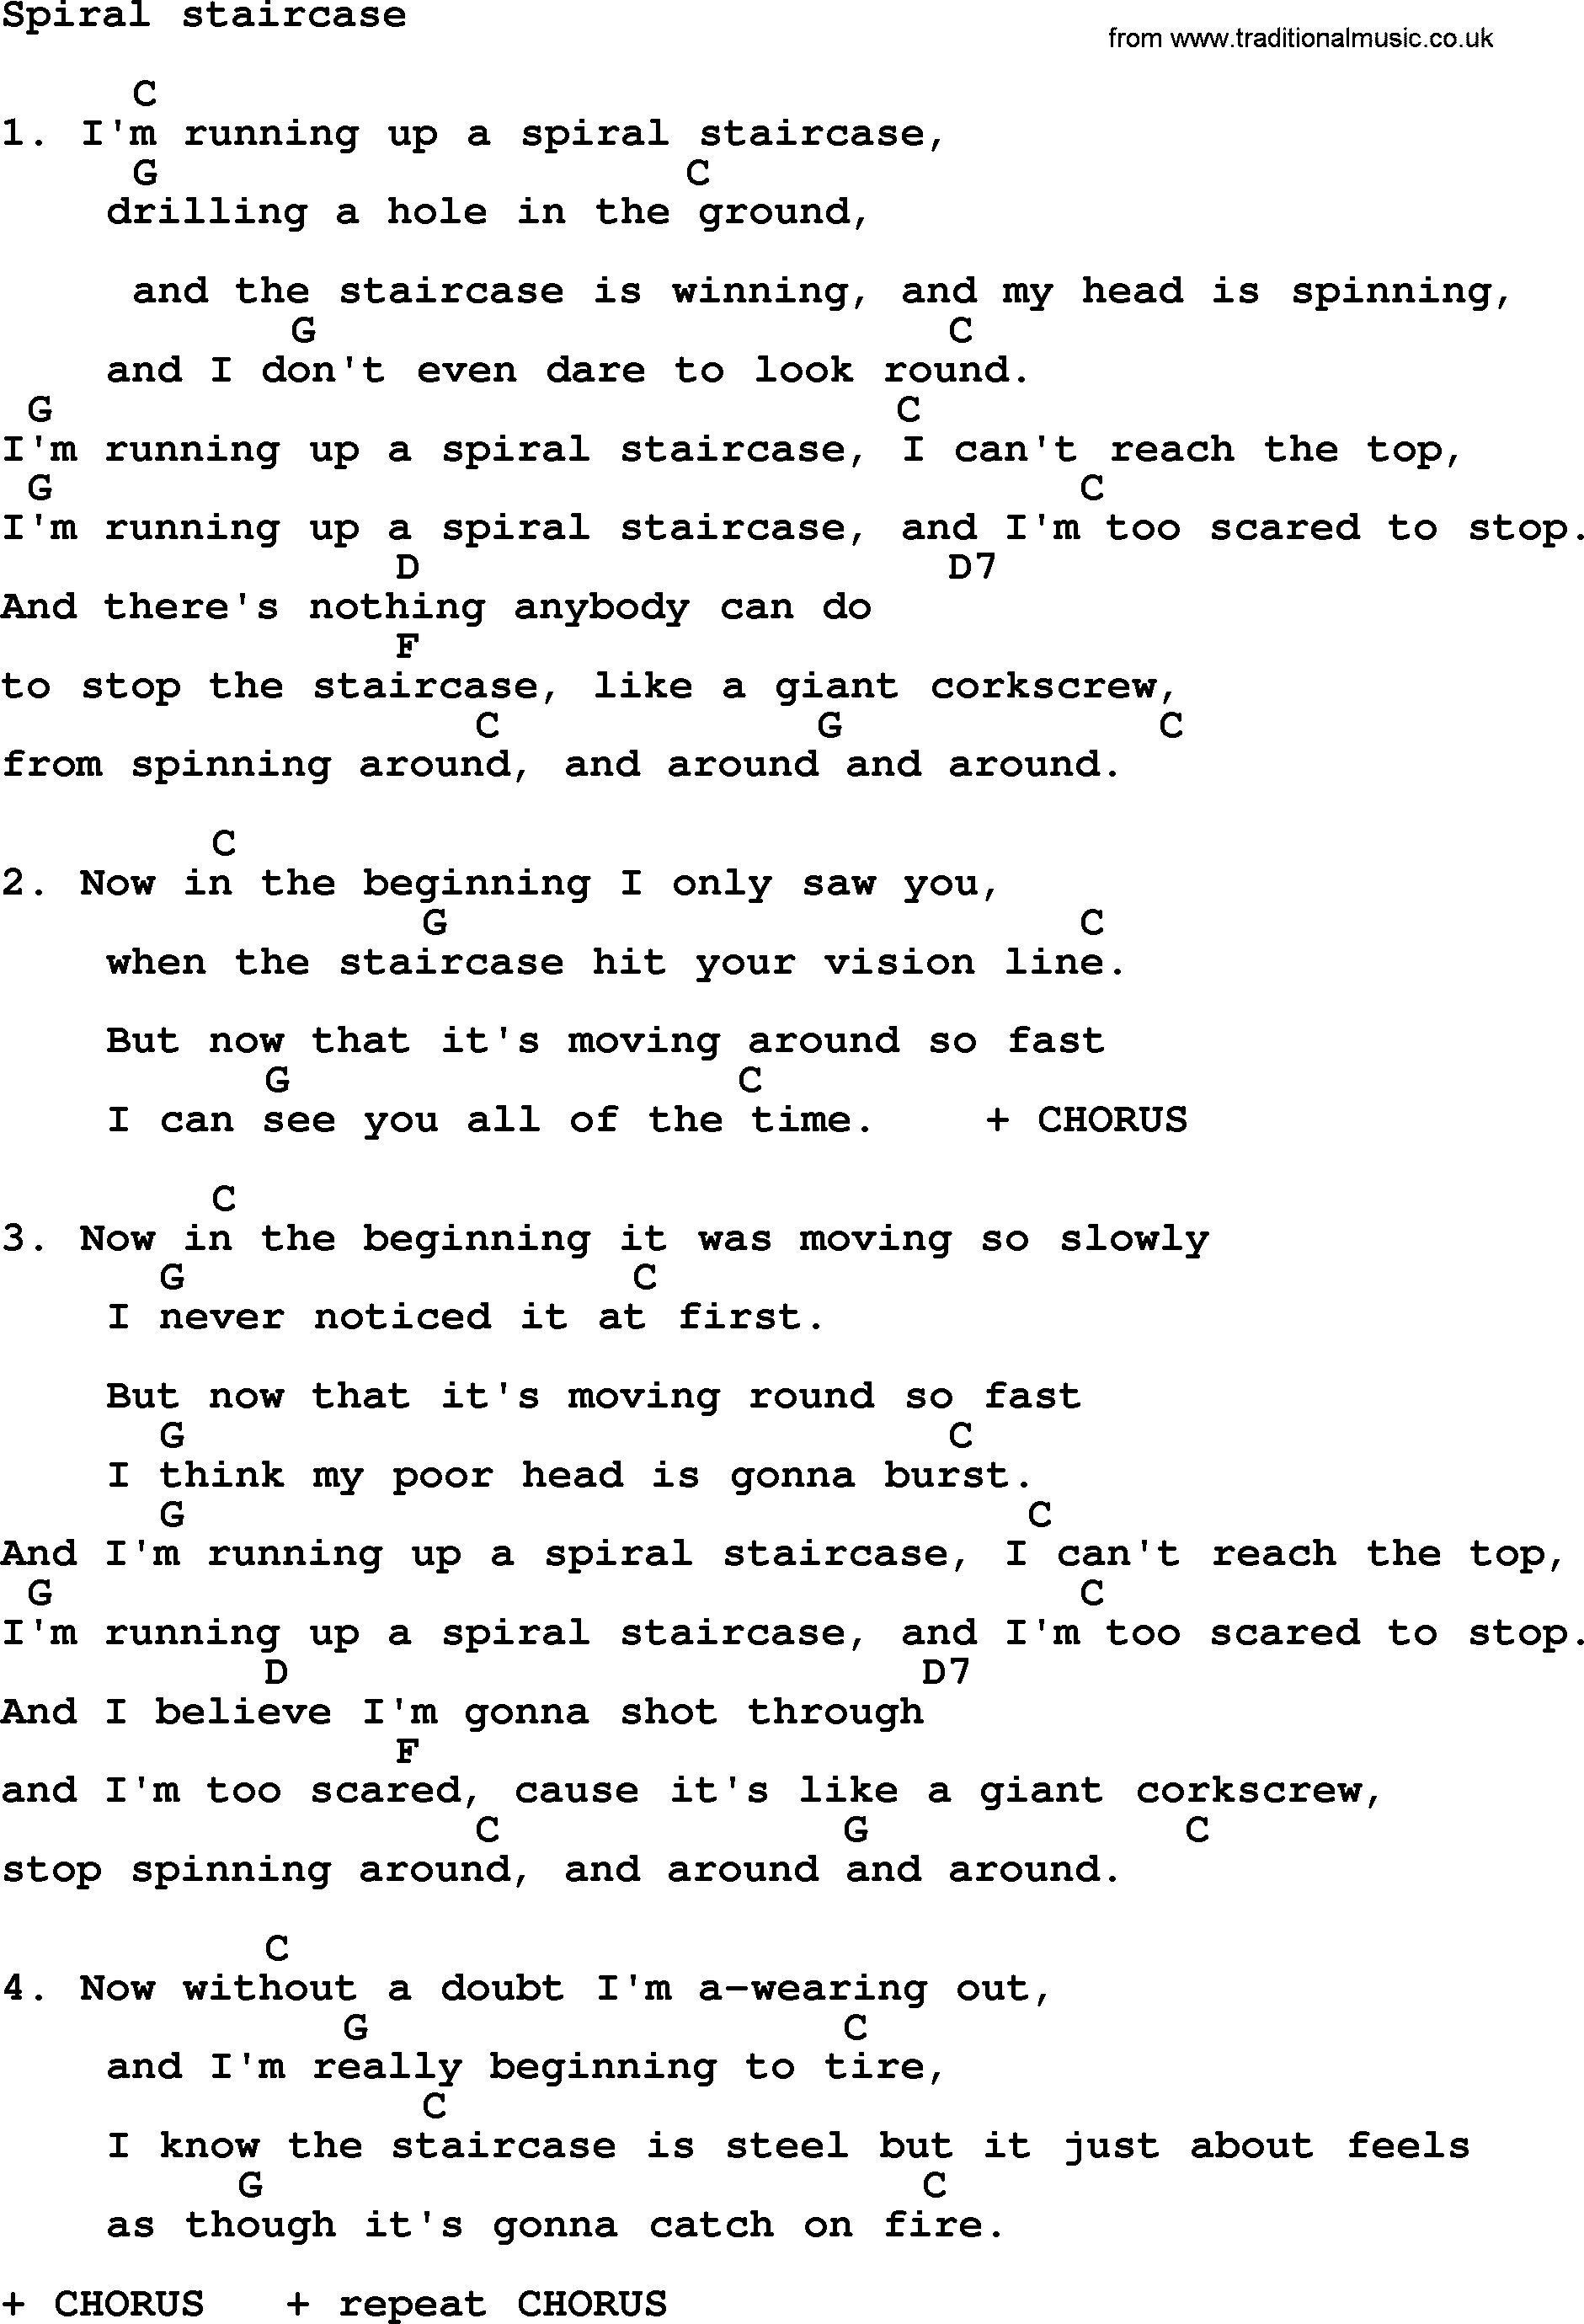 Best ideas about Spiral Staircase Songs . Save or Pin Spiral Staircase by Ralph McTell lyrics and chords Now.